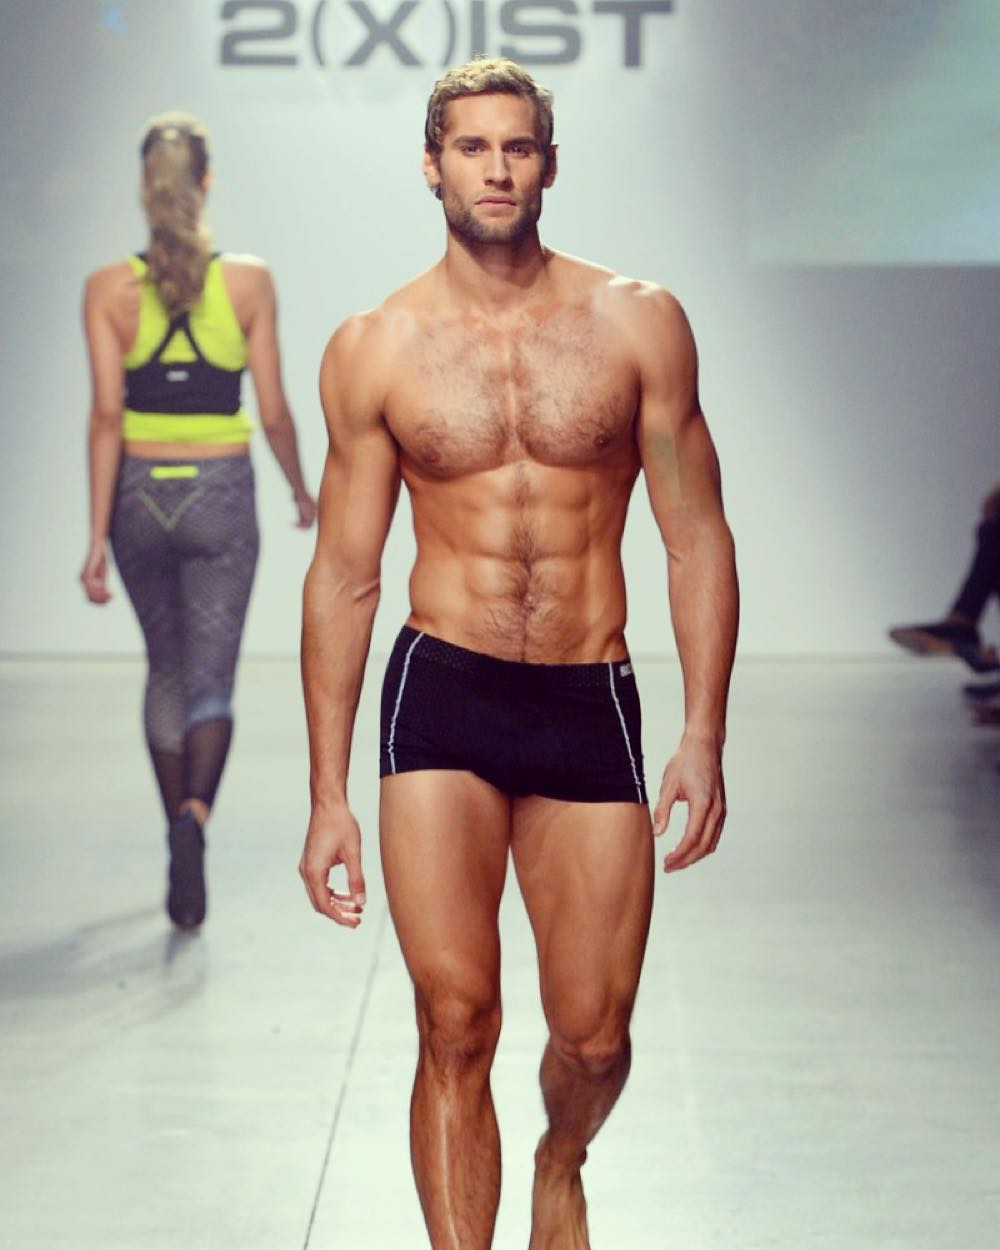 Male underwear fashion show video 82